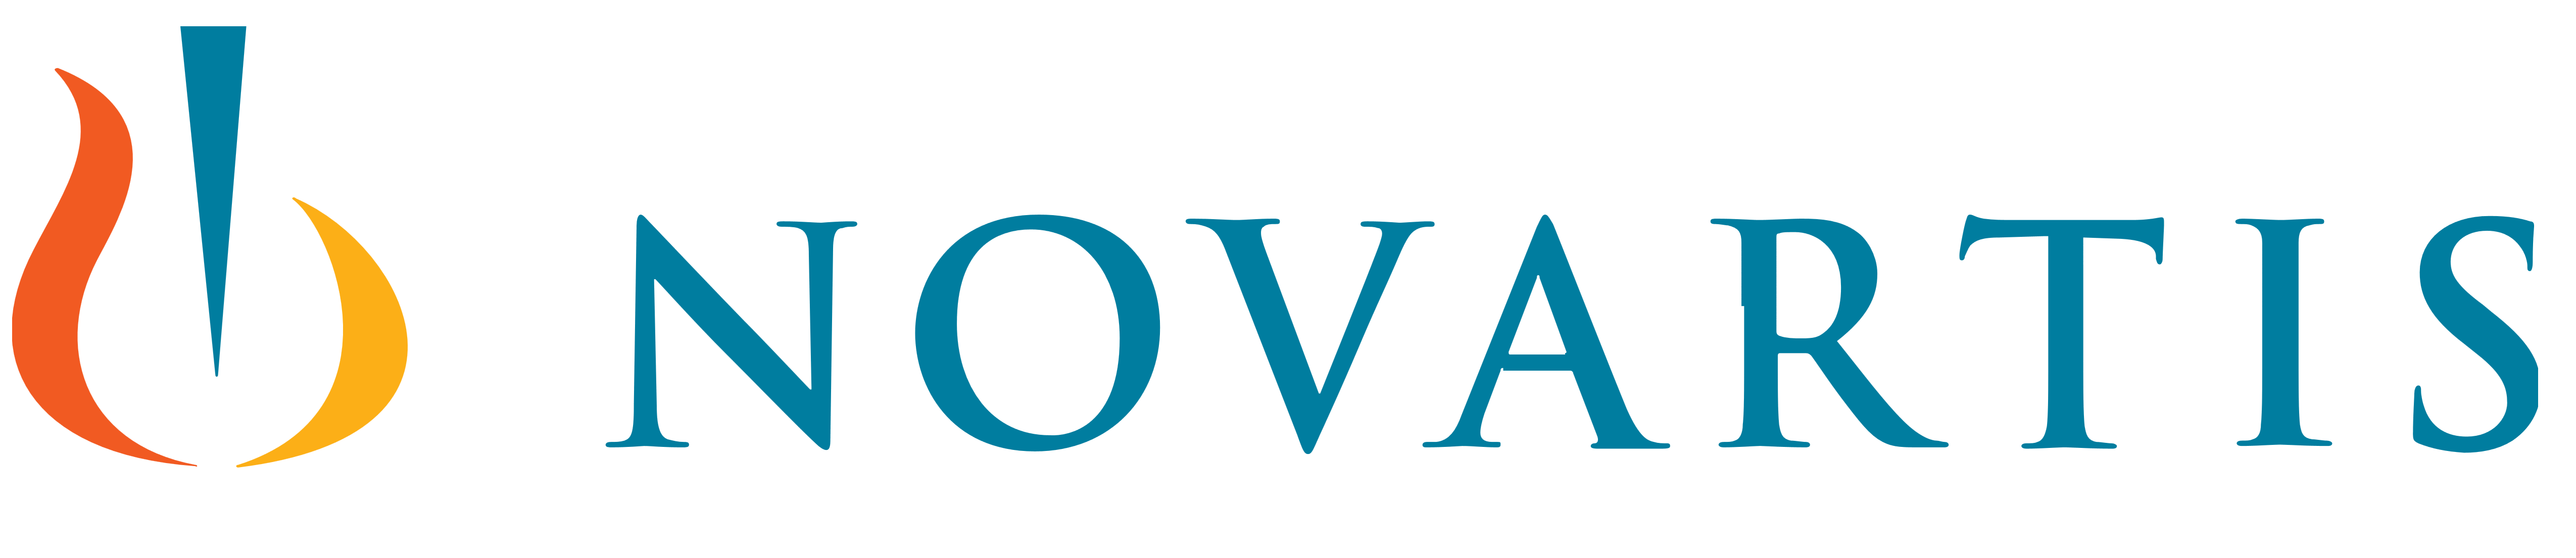 Novartis Logos Download